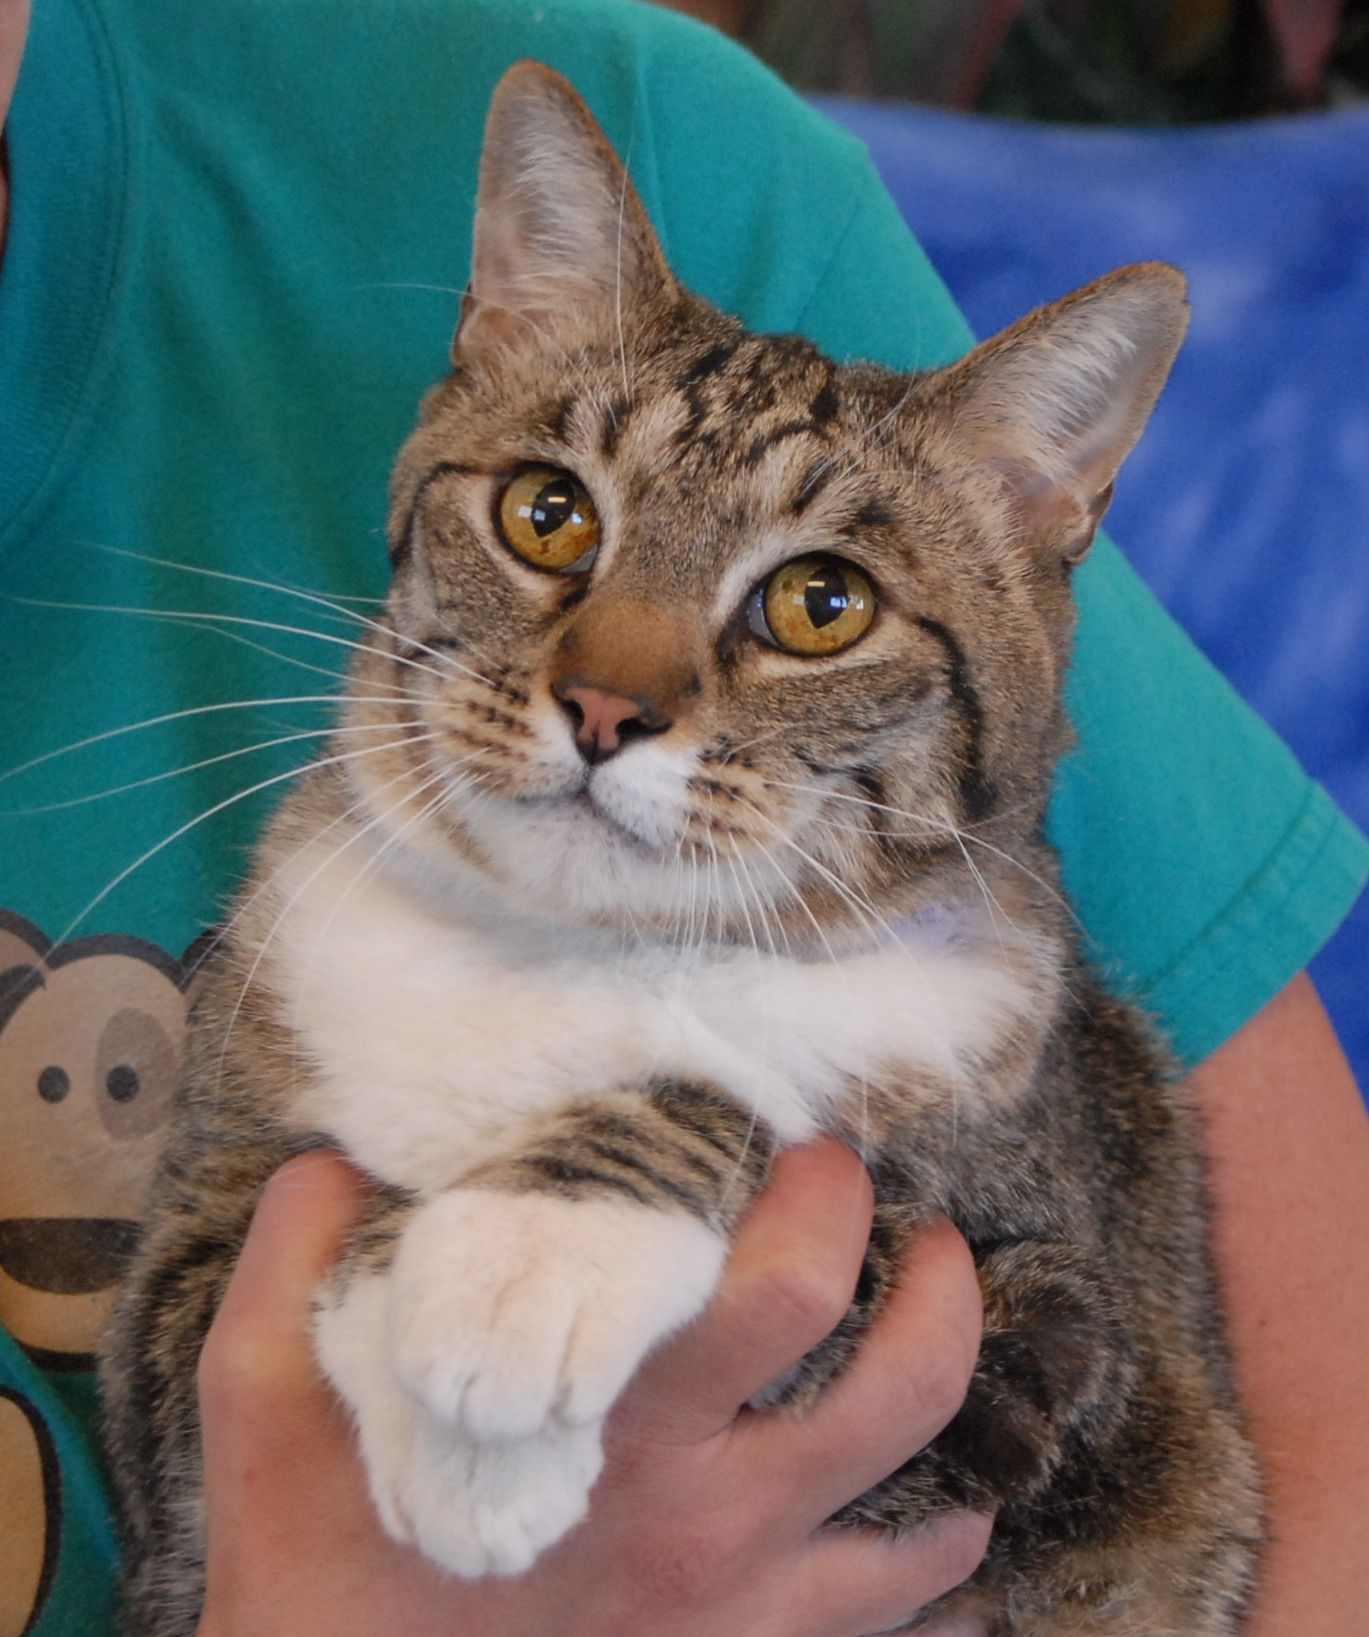 Chucky is a social boy who looks up to you with the most devoted eyes and he likes to chat softly with you throughout the day for reassurance.  He is a very handsome brown tabby with white, about 6 years of age, neutered, and debuting for adoption today at Nevada SPCA (www.nevadaspca.org).  Chucky was reportedly abandoned in a neighborhood, found a home with an open door, and then entered to be given food and protection.